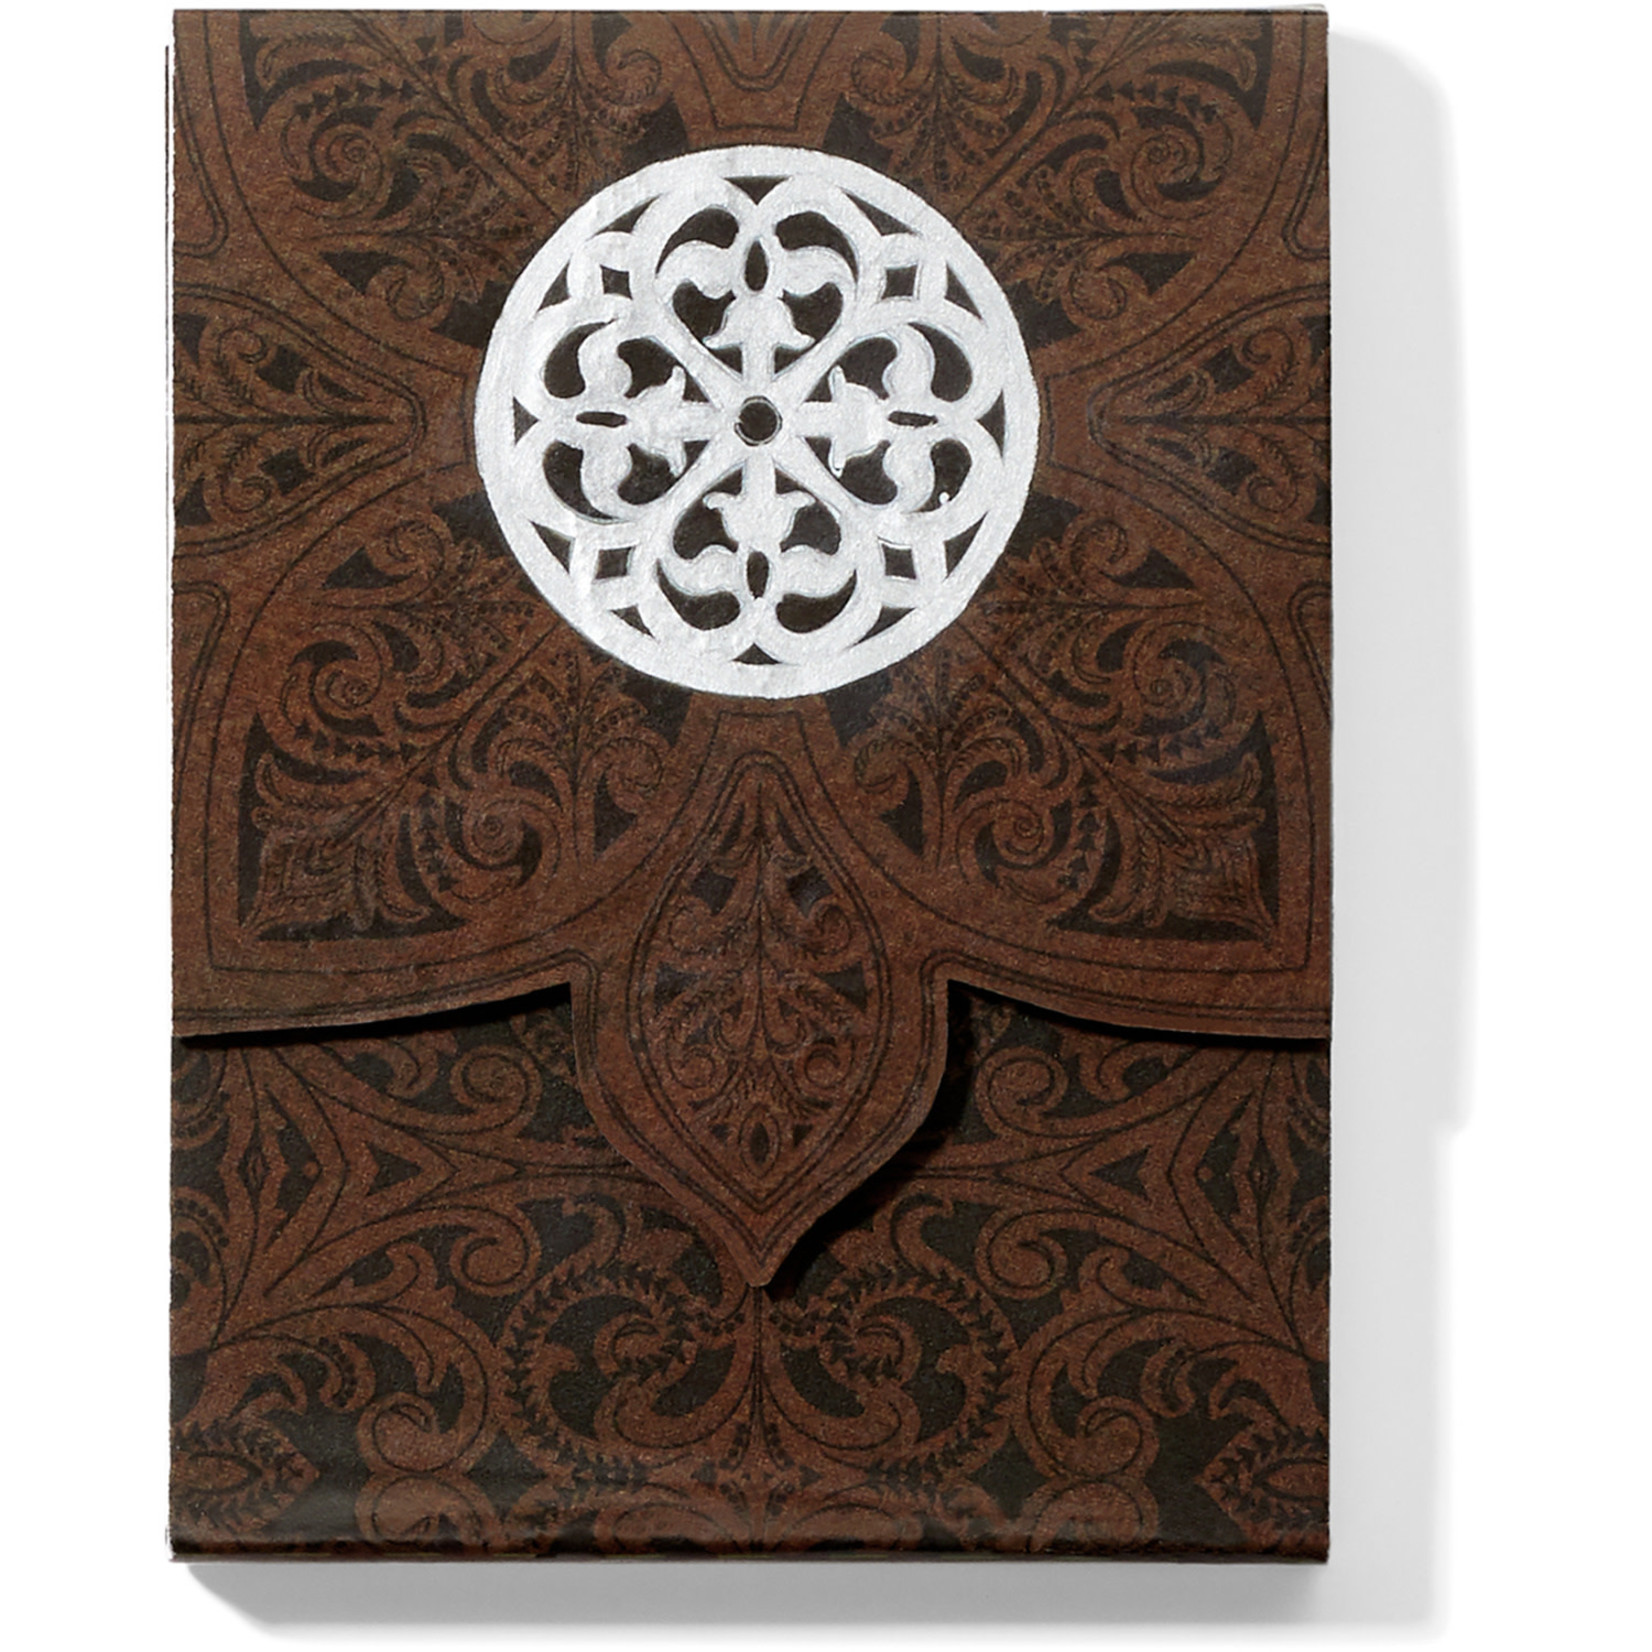 Brighton G82969 Ferrara Rose Window Notepad